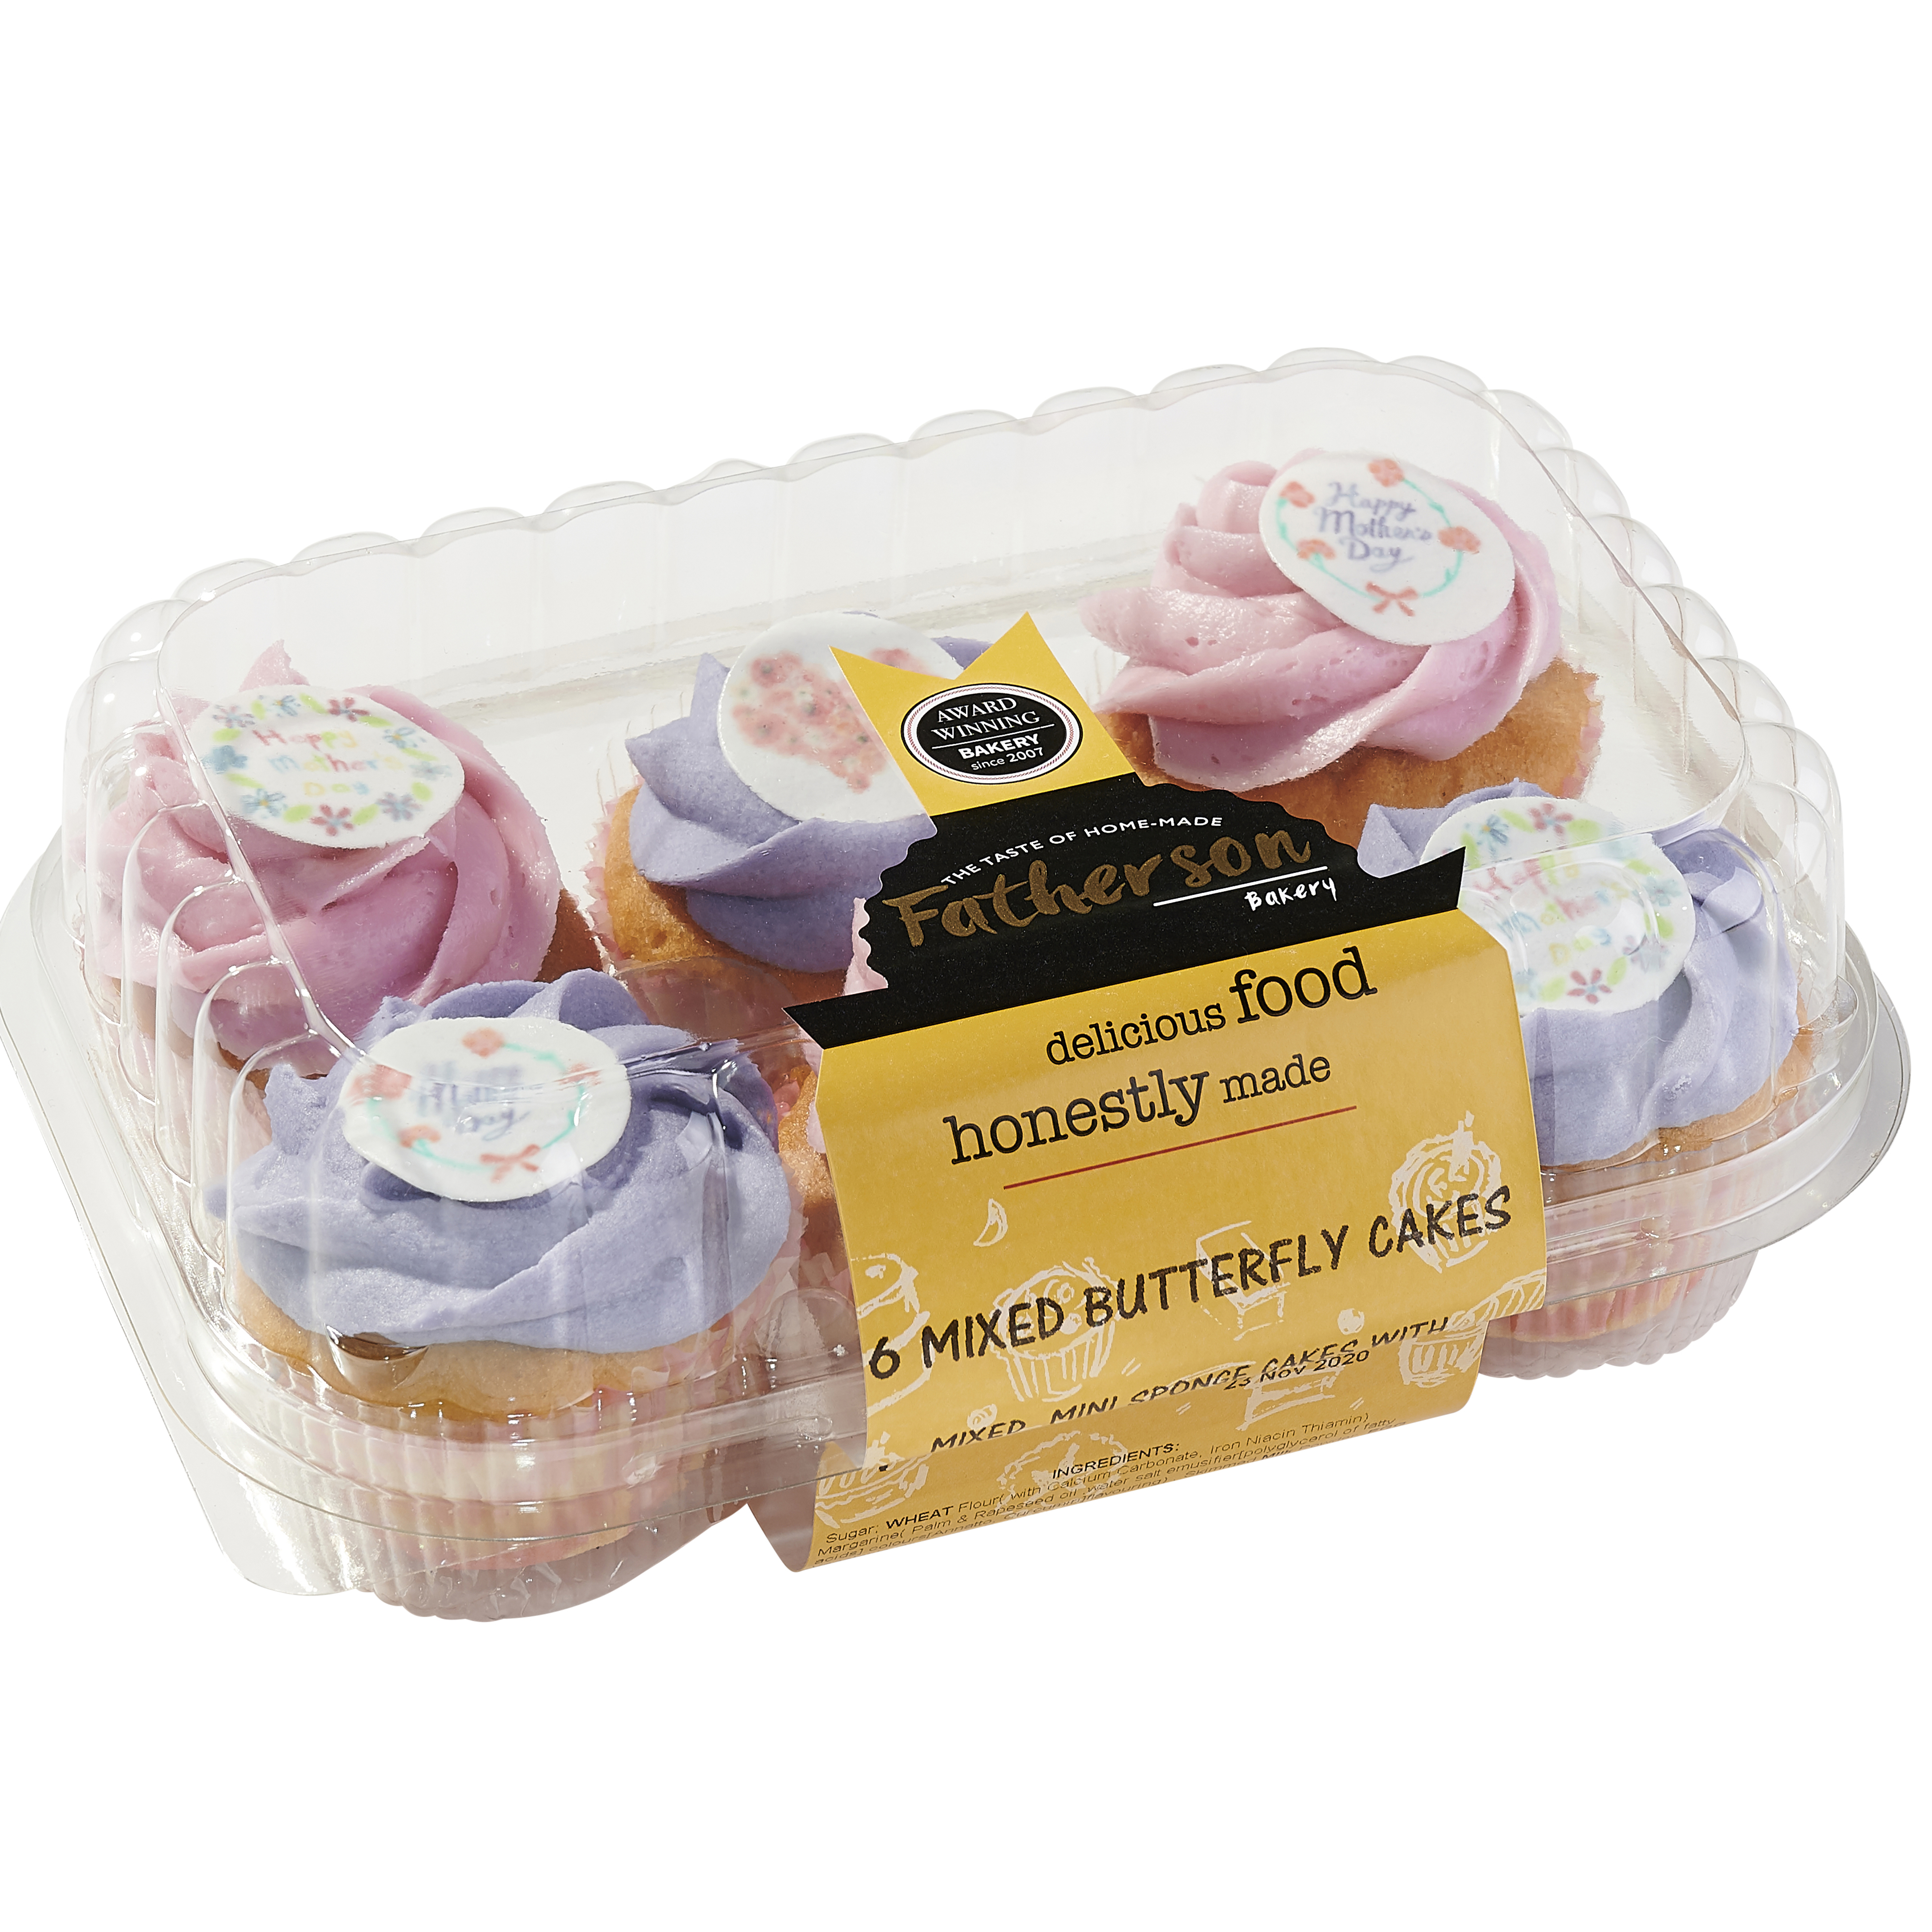 Fatherson Bakery launches Mother's Day cake range